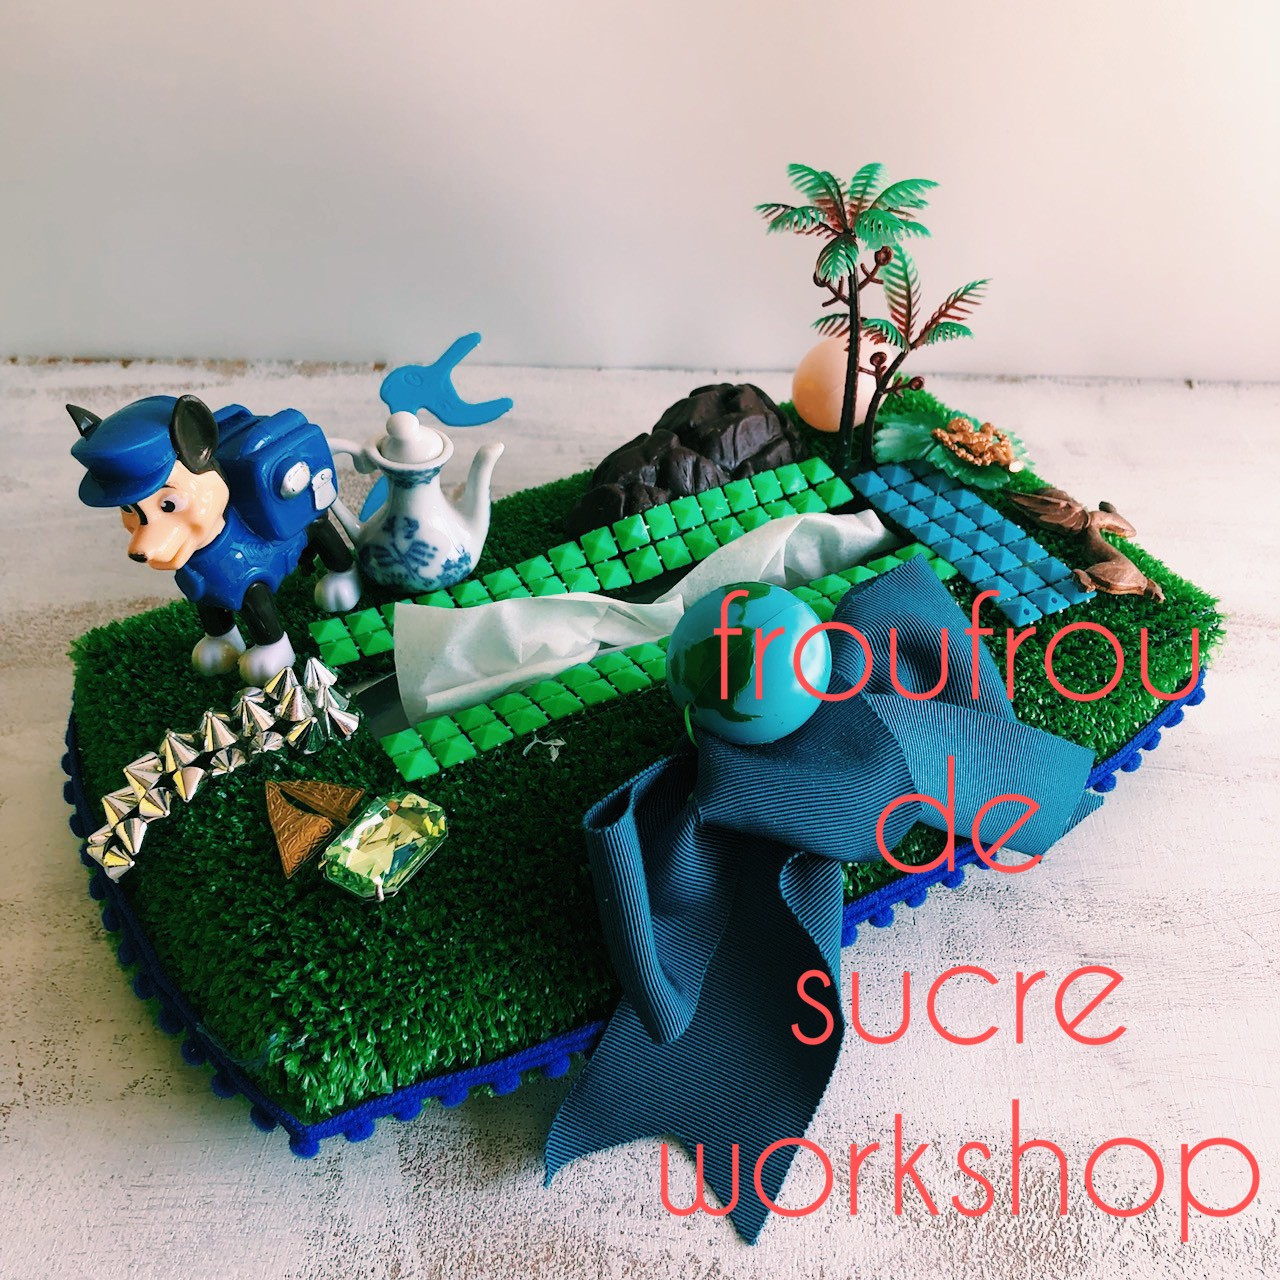 ★FrouFrou de Sucre workshop★